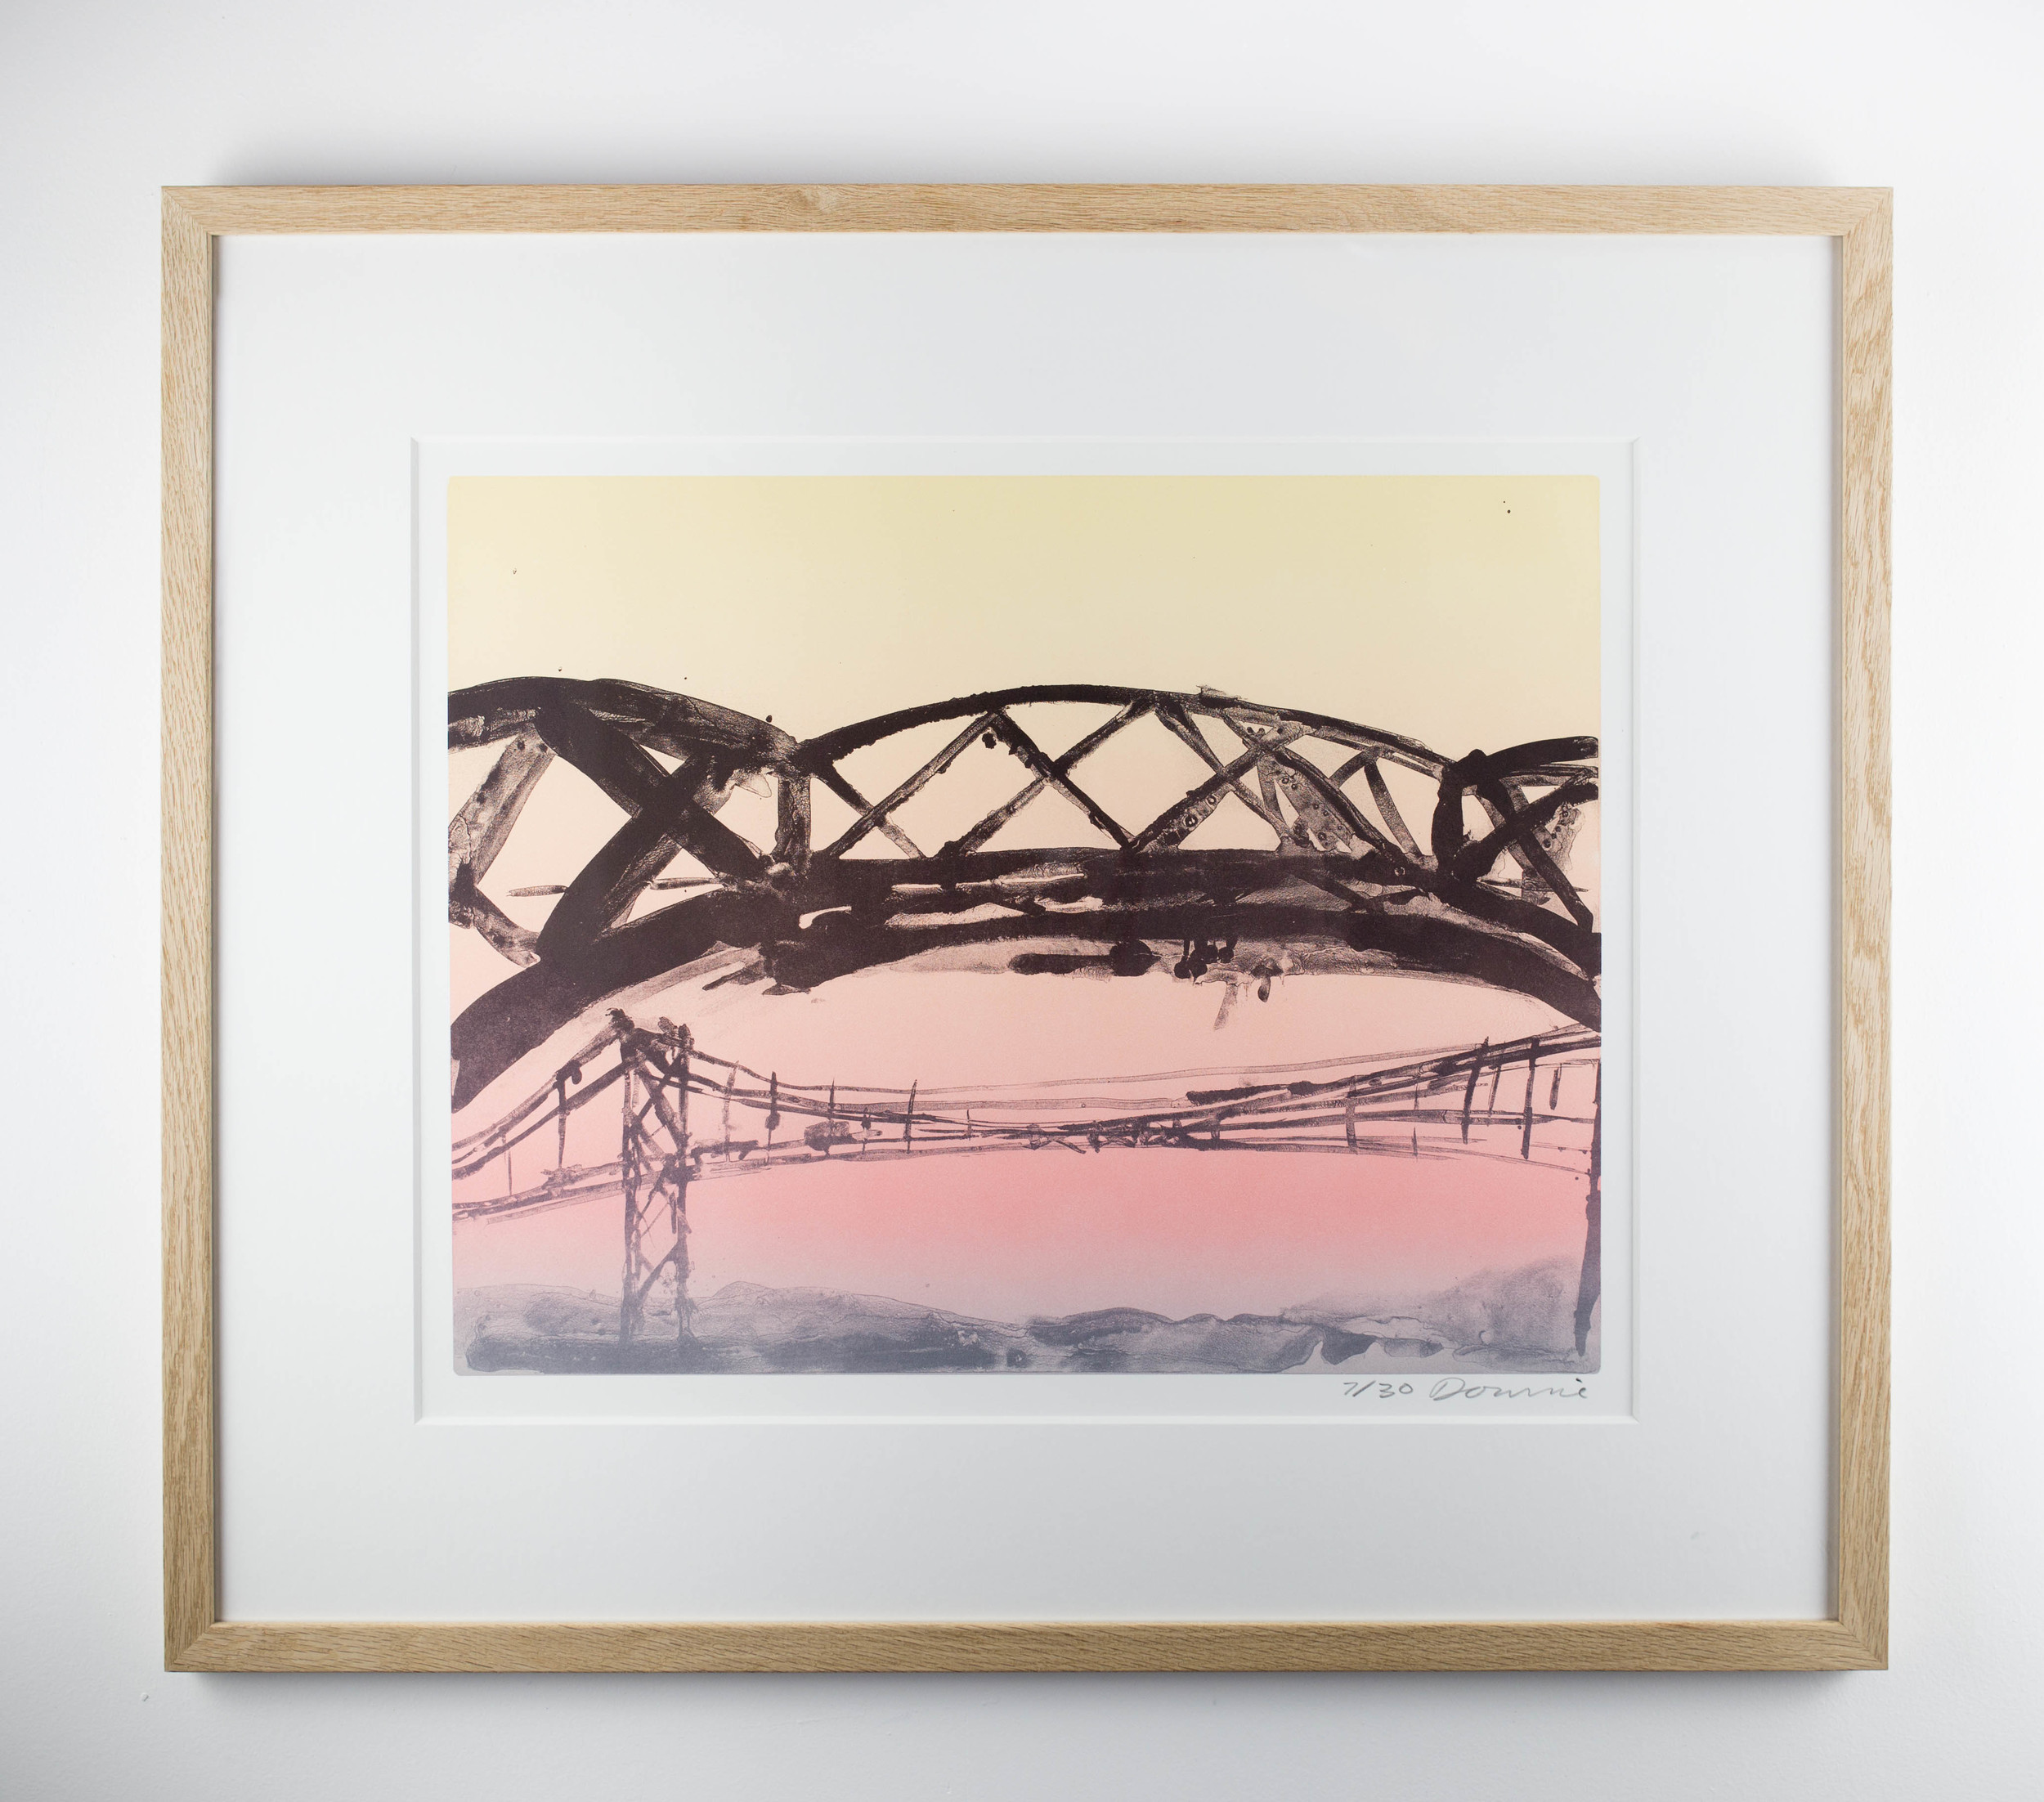 LOT 15   Kate Downie   Ferry Down the Firth  Lithograph